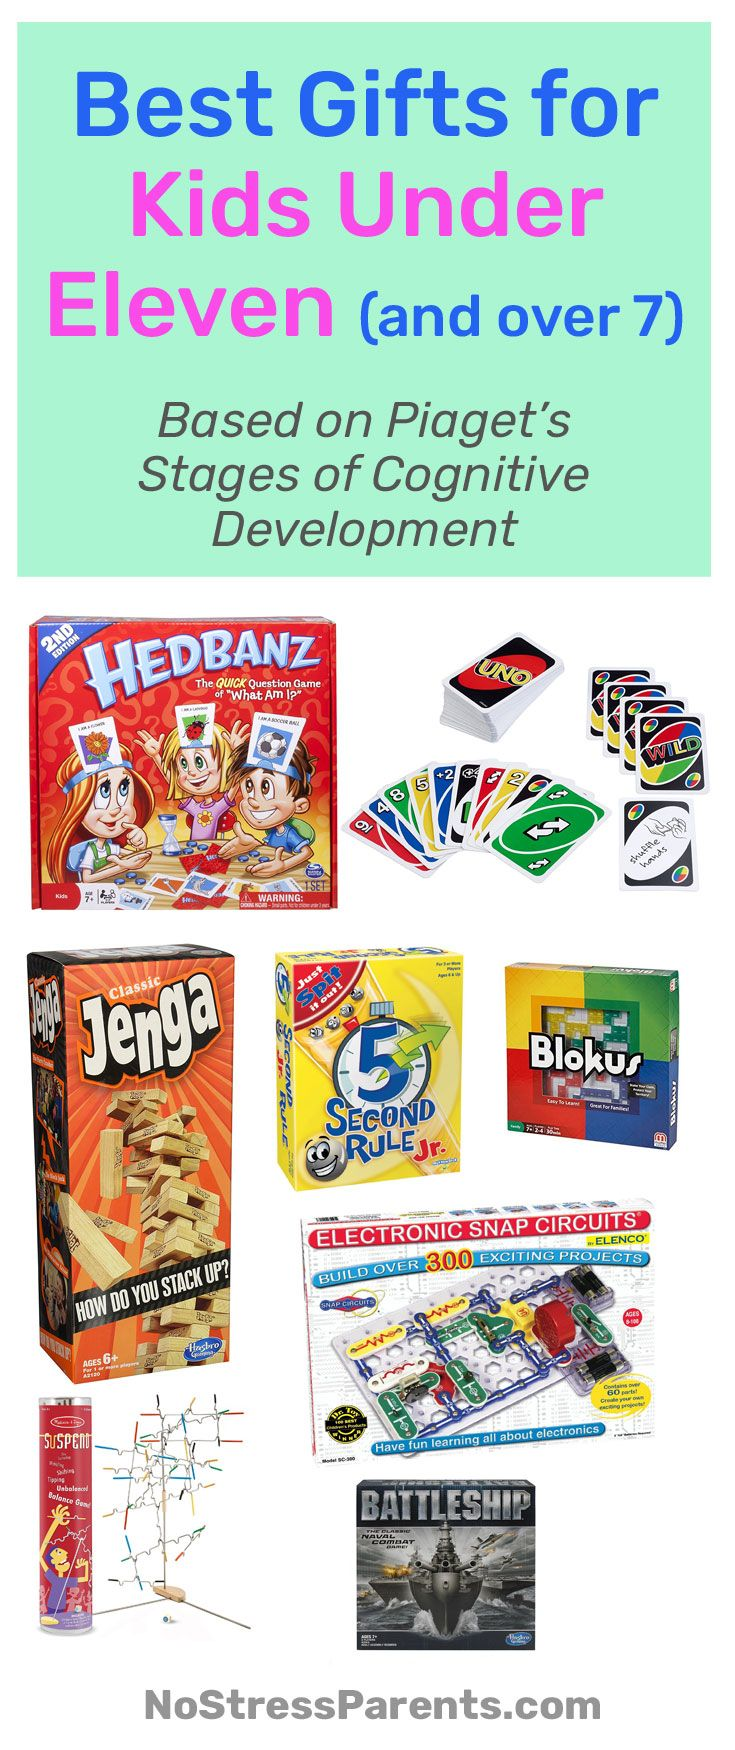 Imagine you could have Piaget handpicking the gifts for your kids under 11 years old, based on his theory of Cognitive Development. This is the purpose of this post.